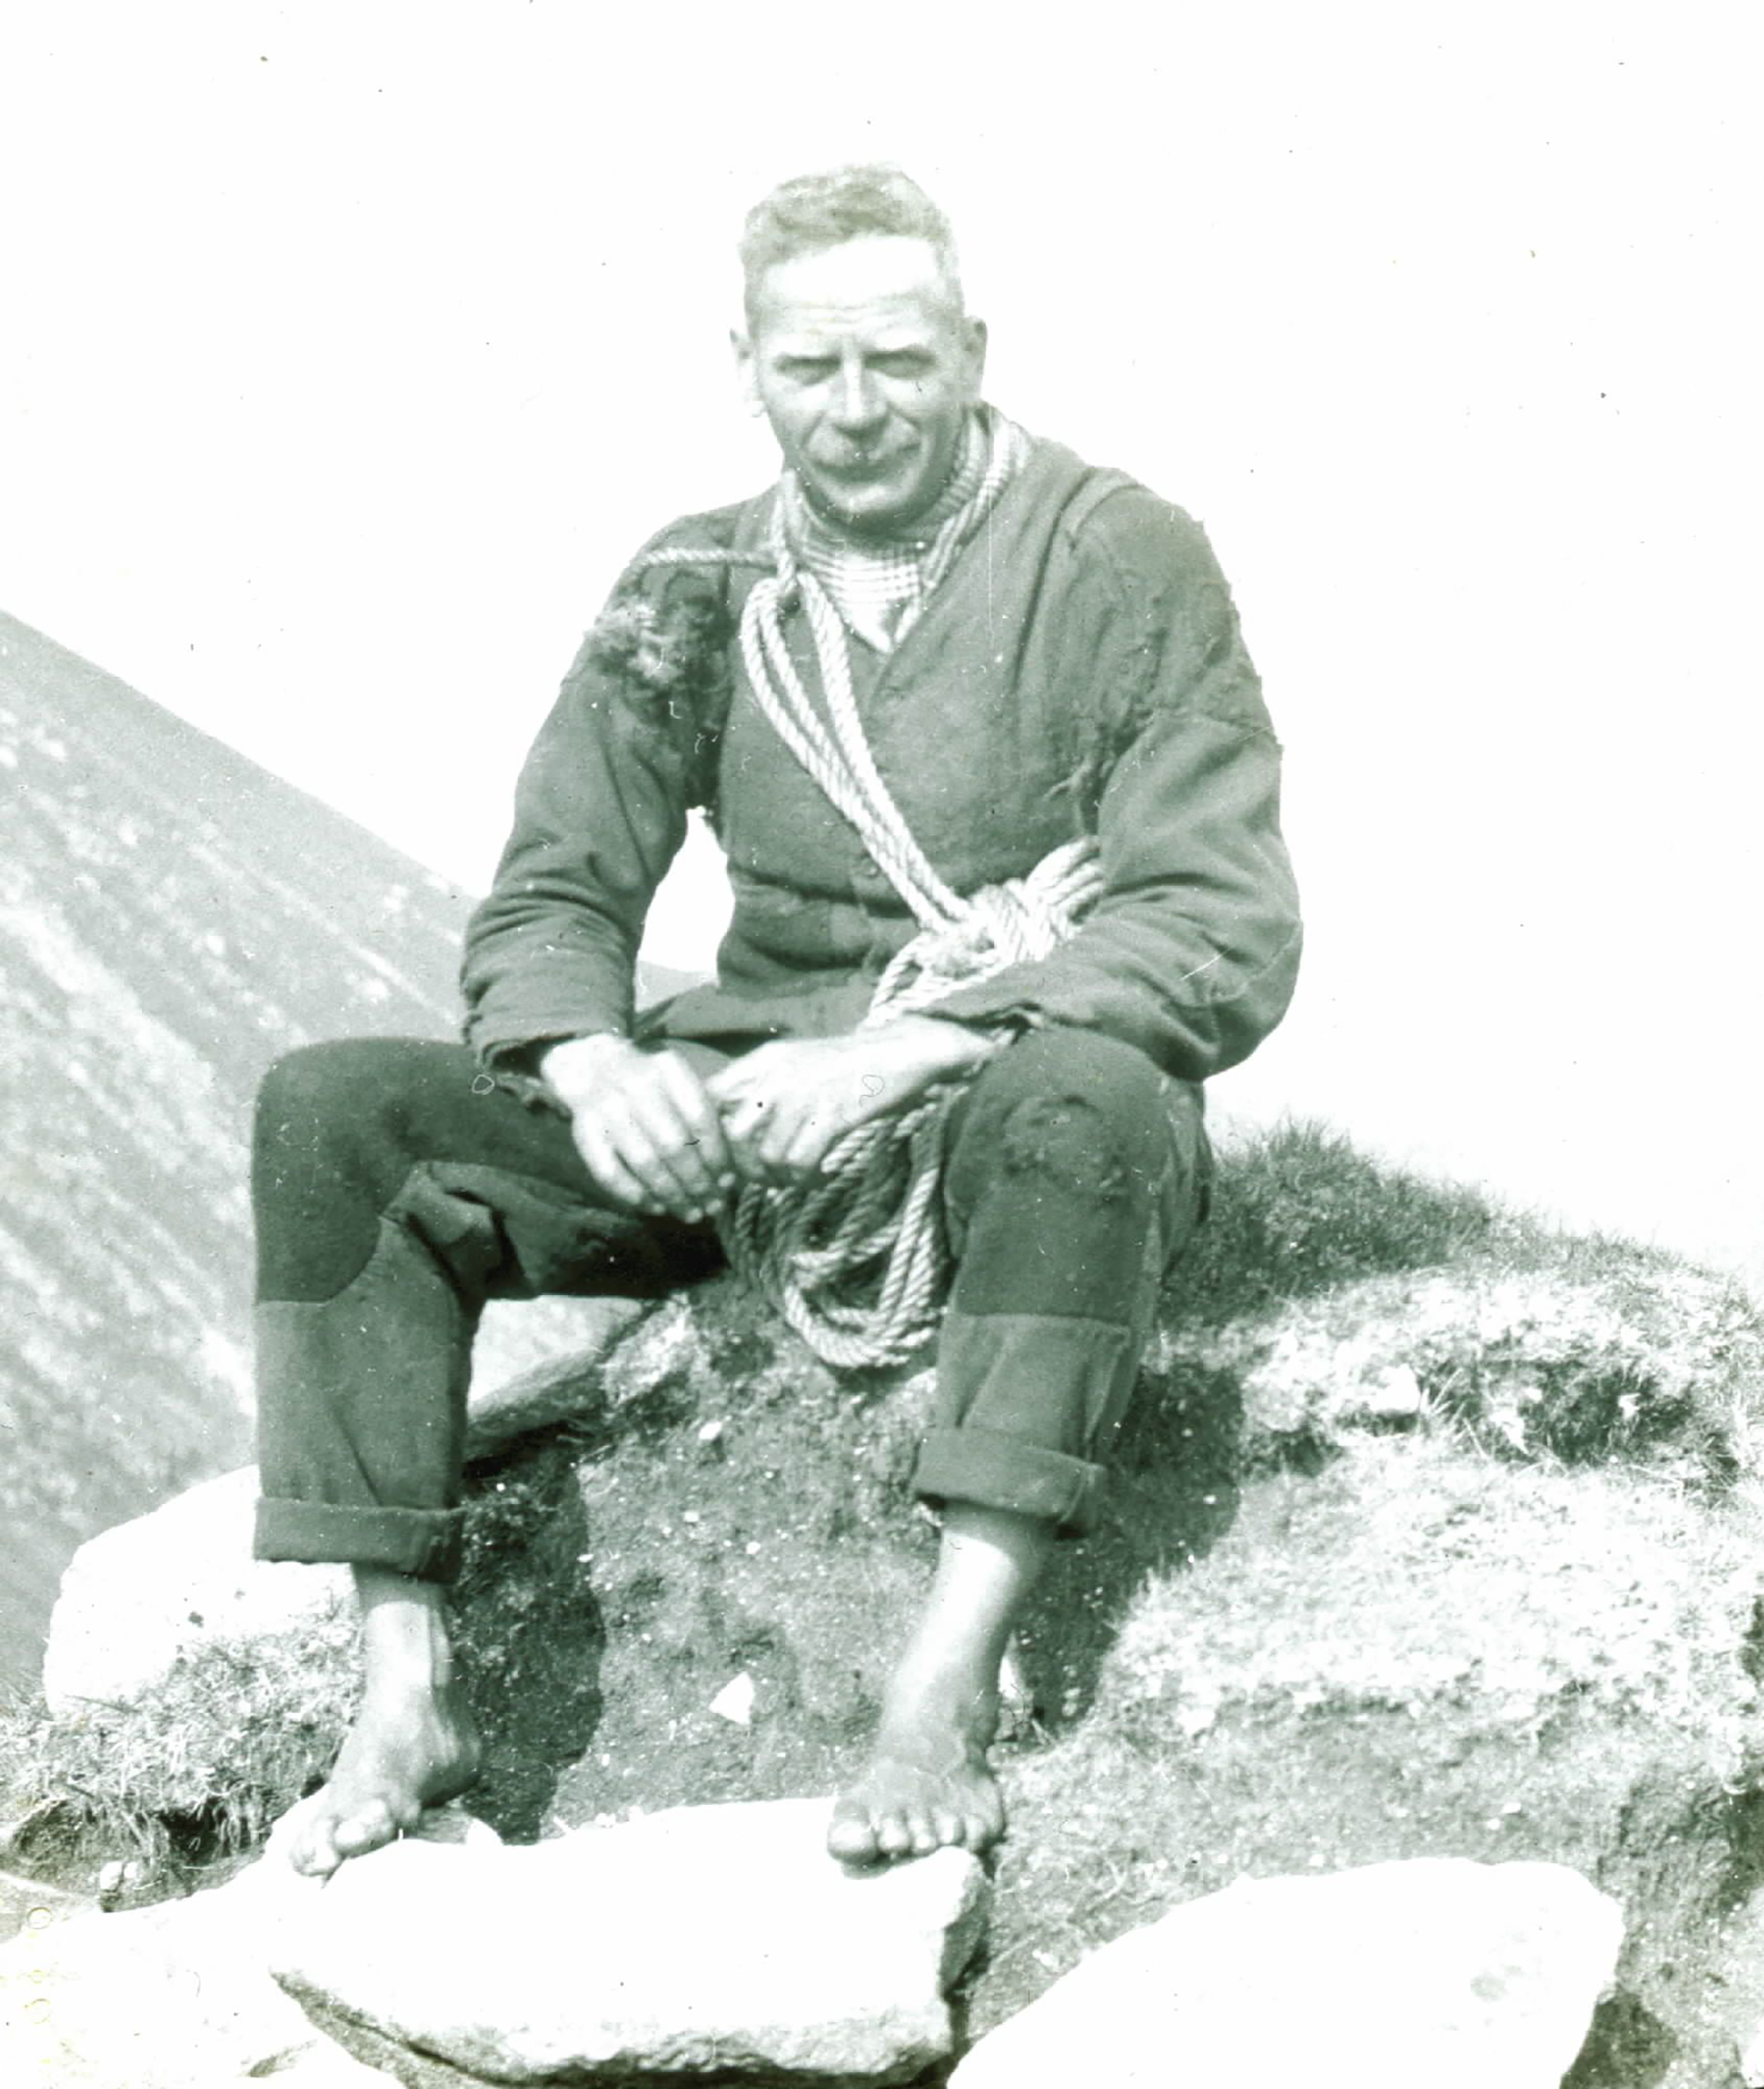 Fig. 7: Glass plate negative of Ewen MacDonald of St Kilda, #107 © National Trust for Scotland, St Kilda